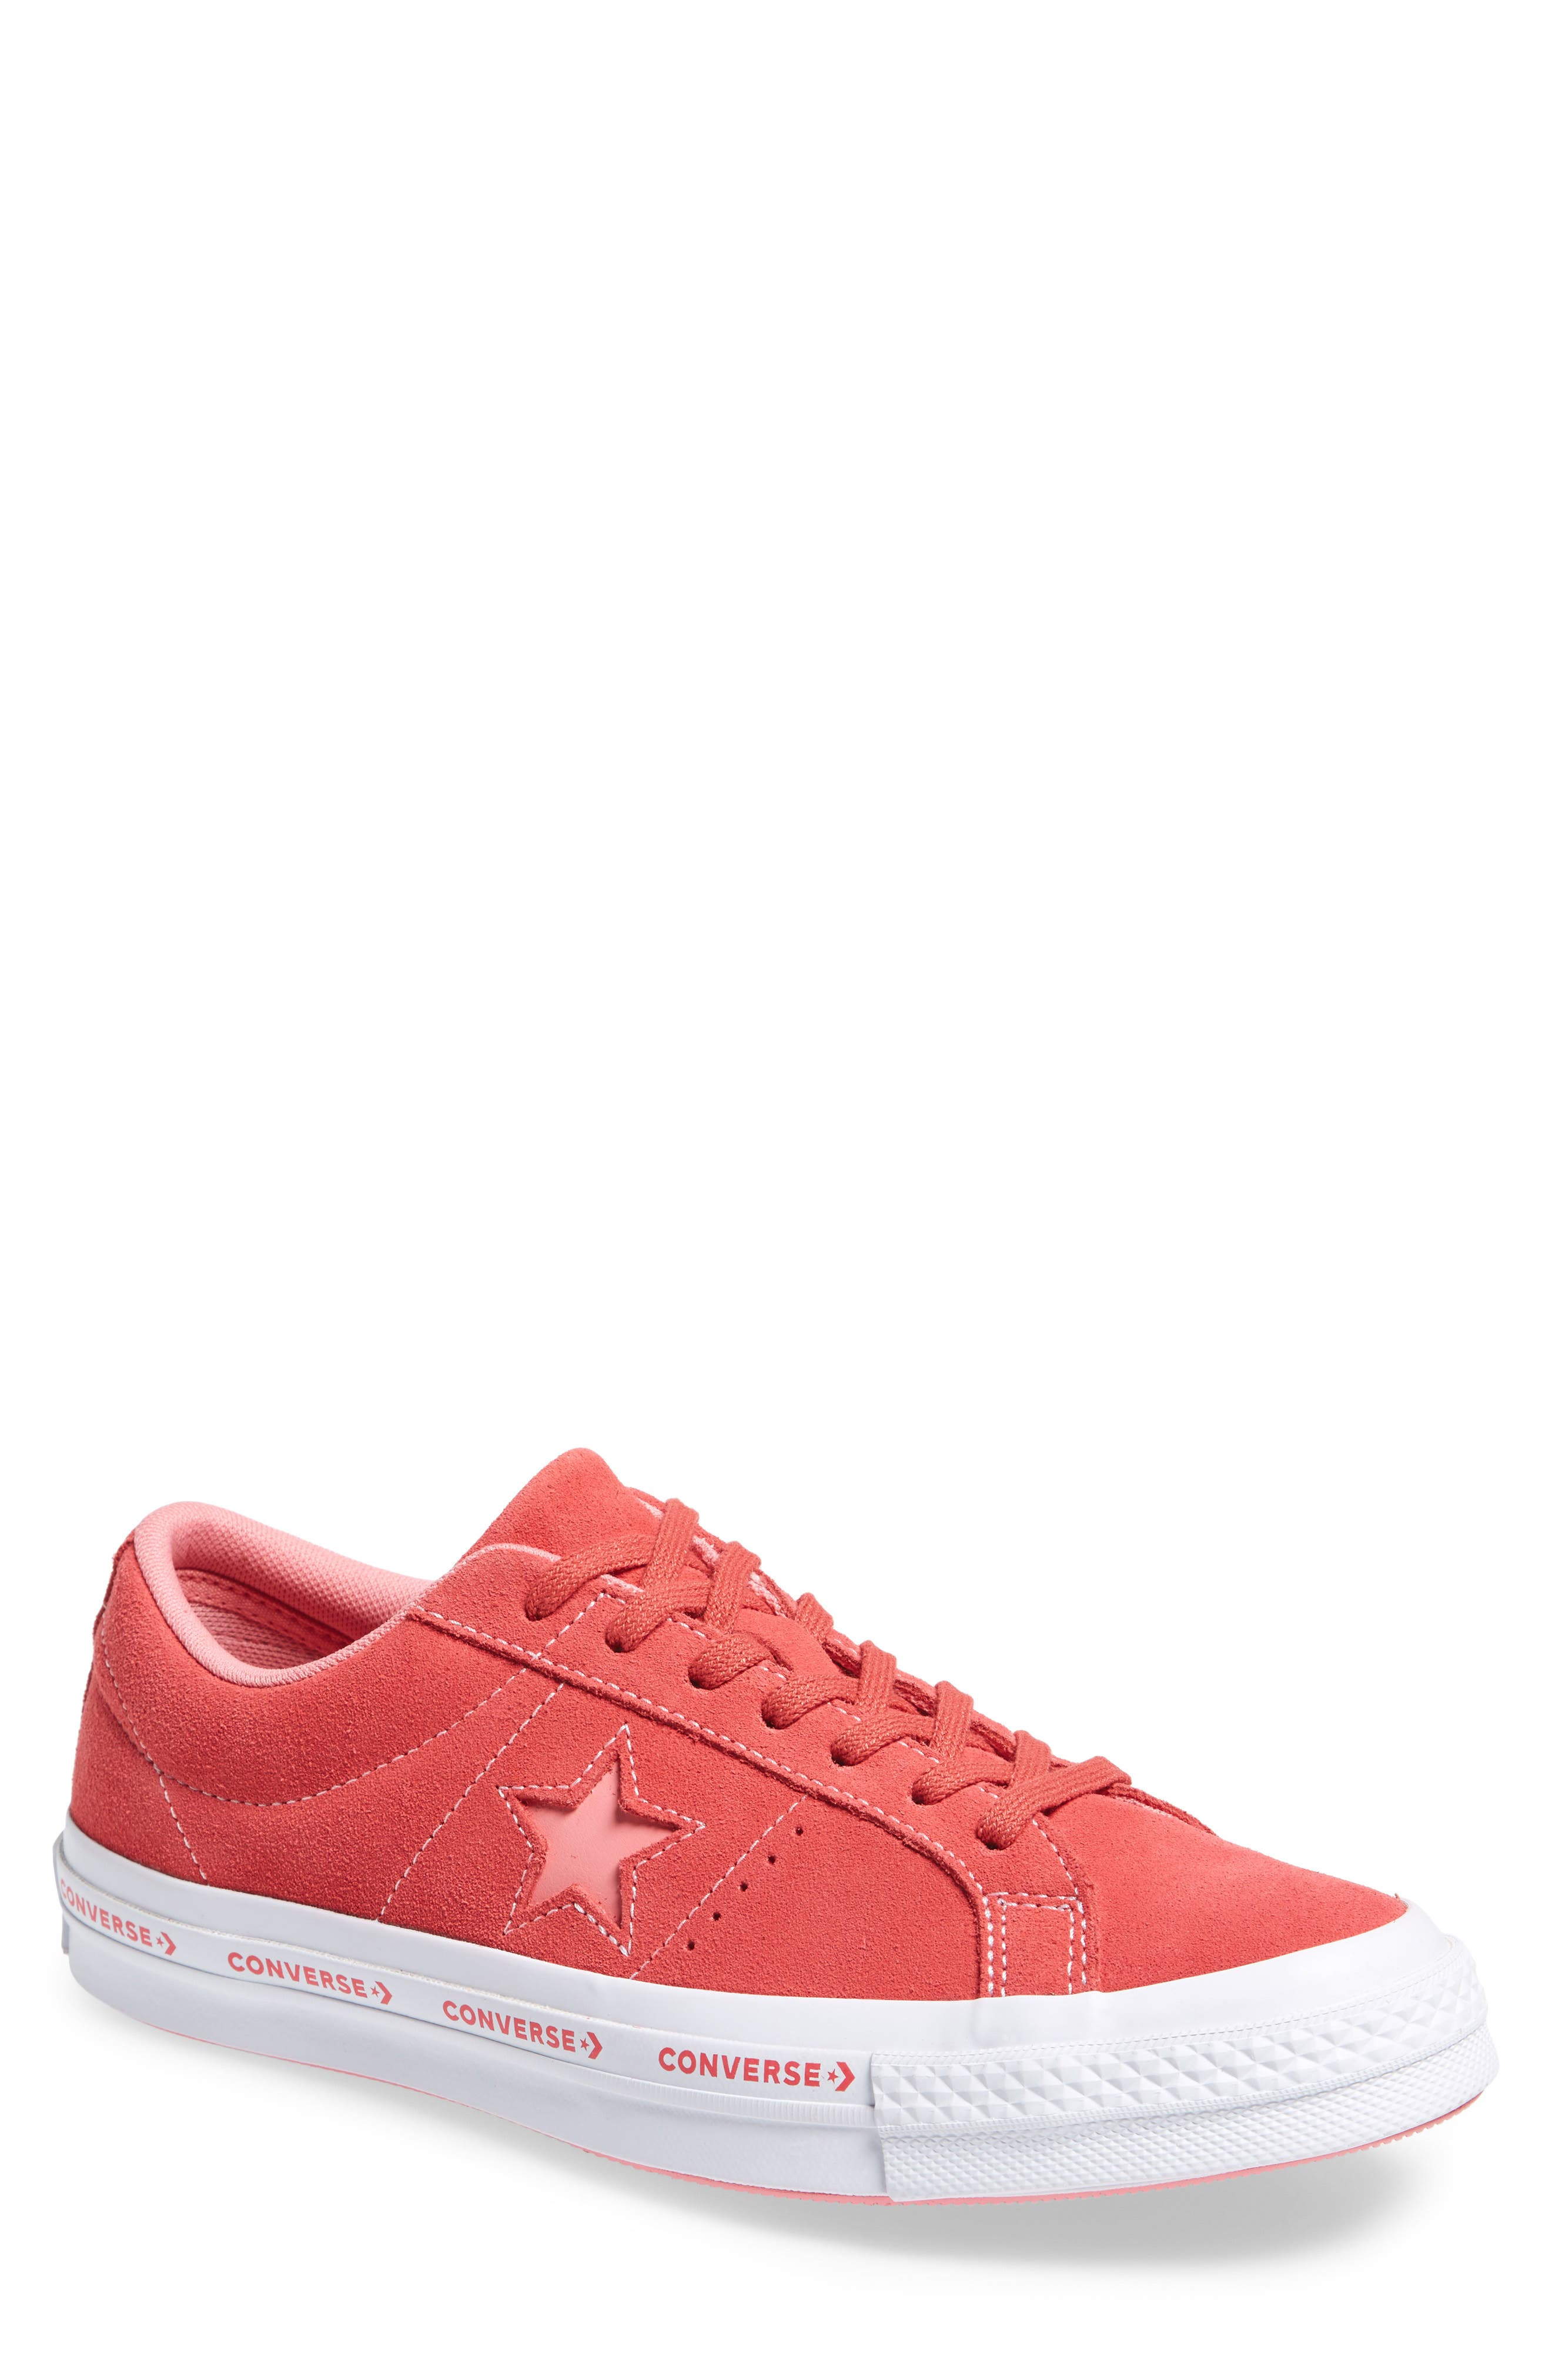 Chuck Taylor<sup>®</sup> One Star Pinstripe Sneaker,                             Main thumbnail 1, color,                             Paradise Pink Suede